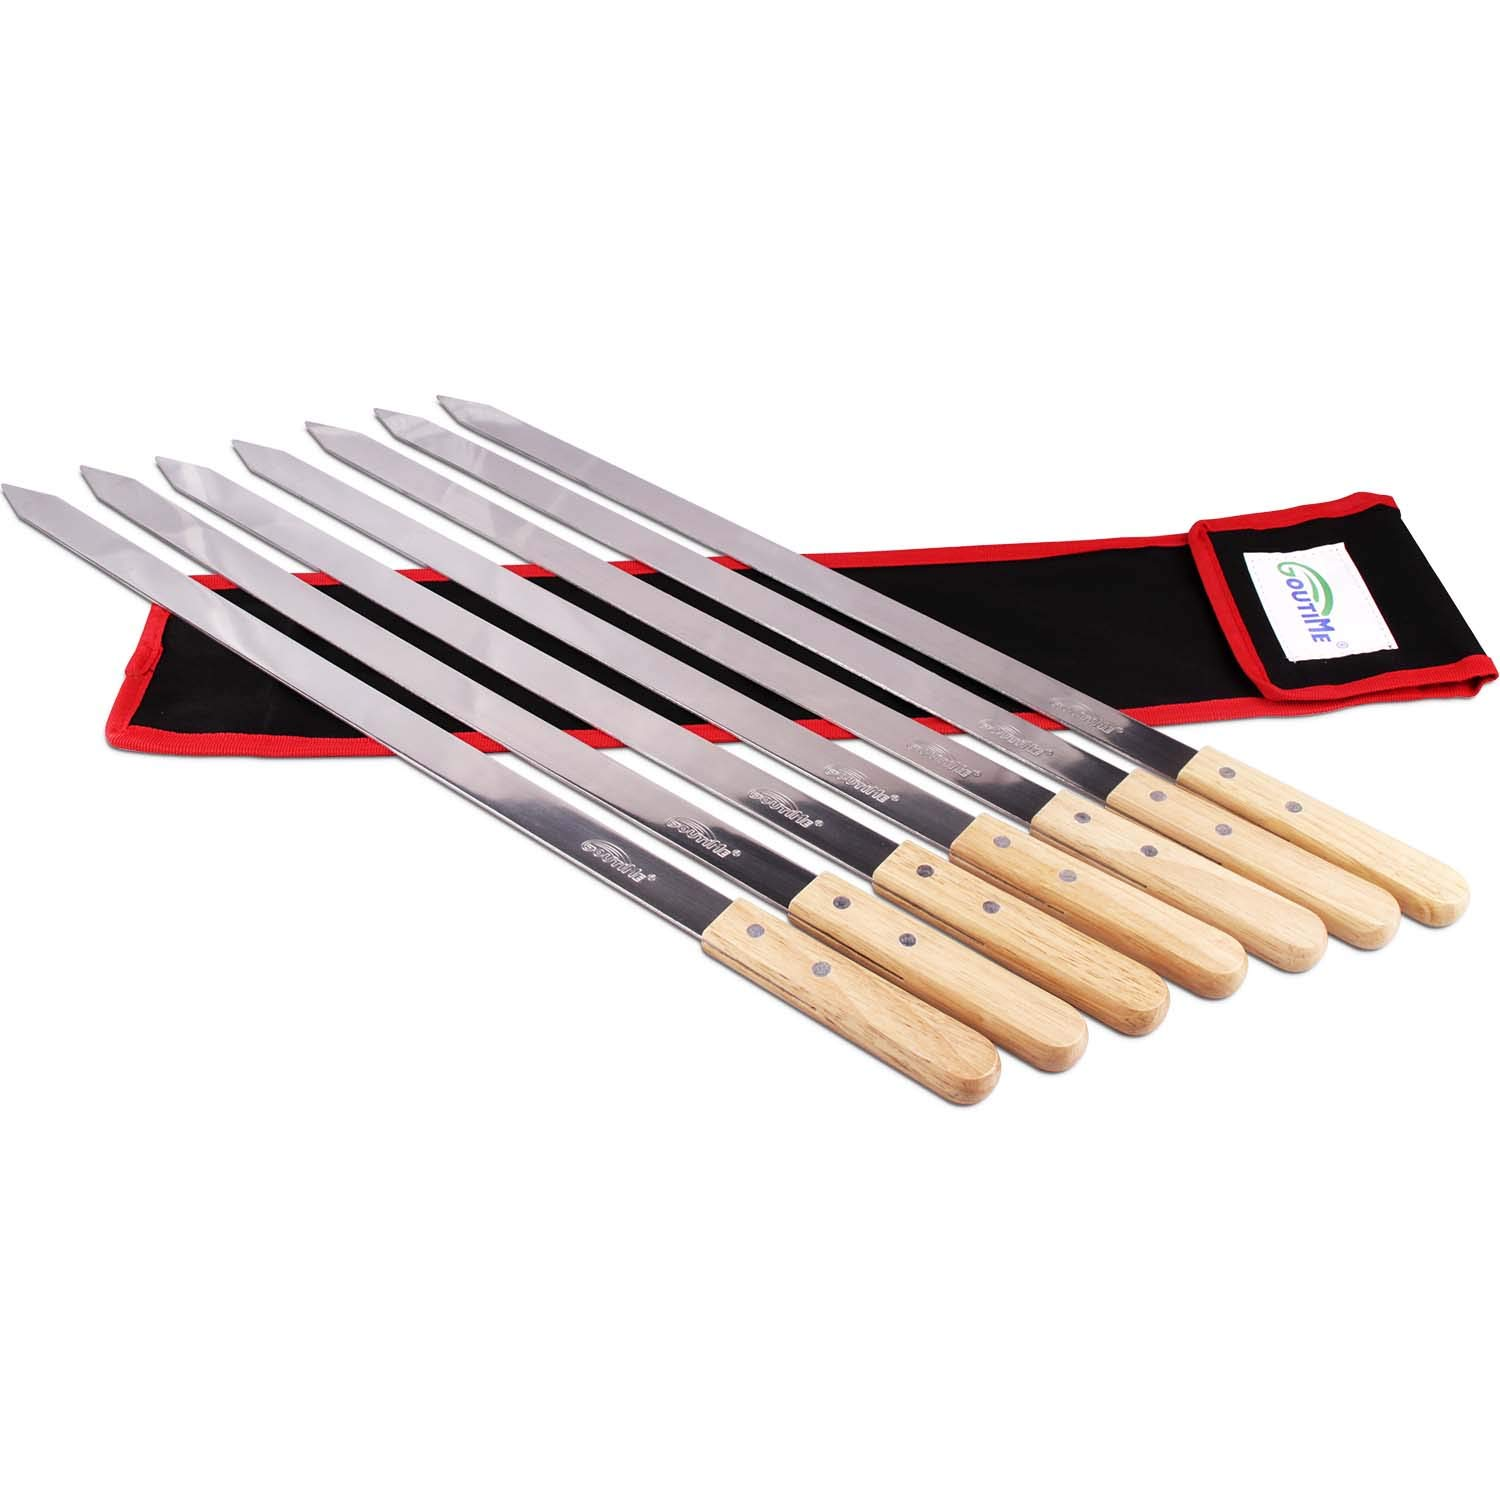 Goutime 23 Inch, 1 Inch Wide Stainless Steel BBQ Skewers for Making Koubideh/Persian/Brazilian Kabob, Set of 7 with Bag by Goutime